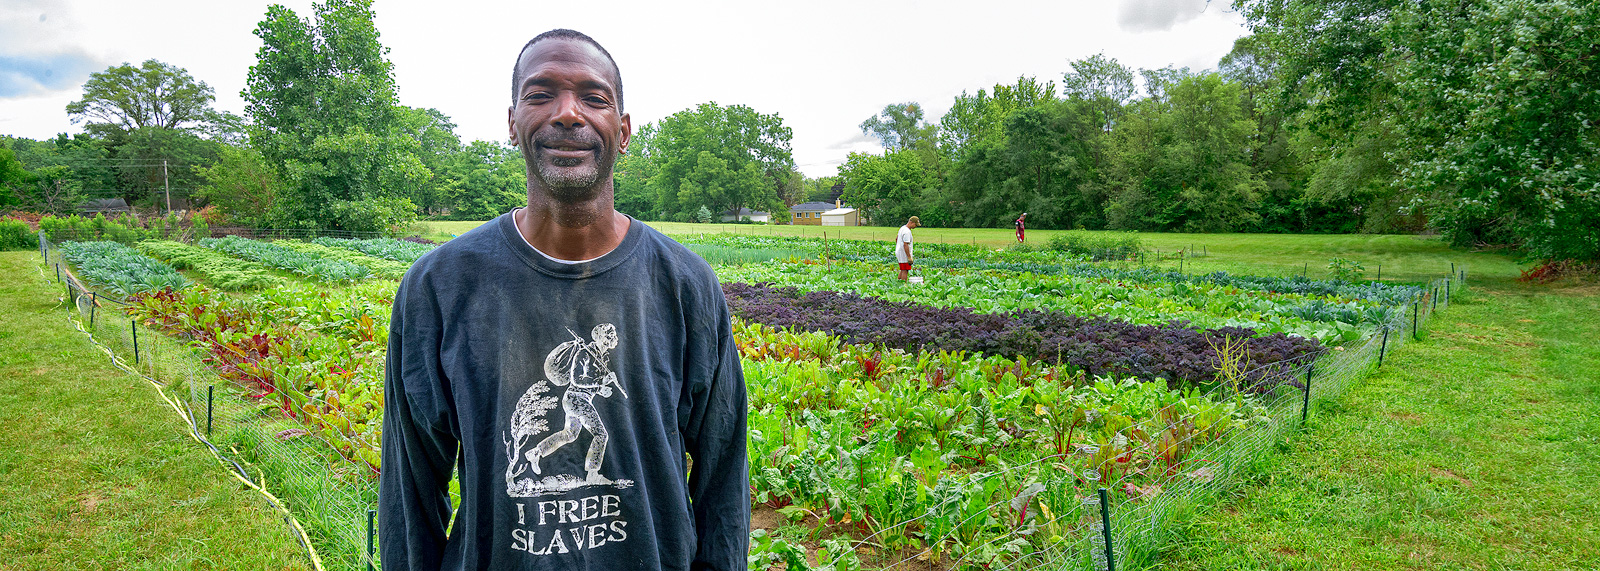 Melvin Parson at We The People Growers Association gardens <span class='image-credits'>Doug Coombe</span>